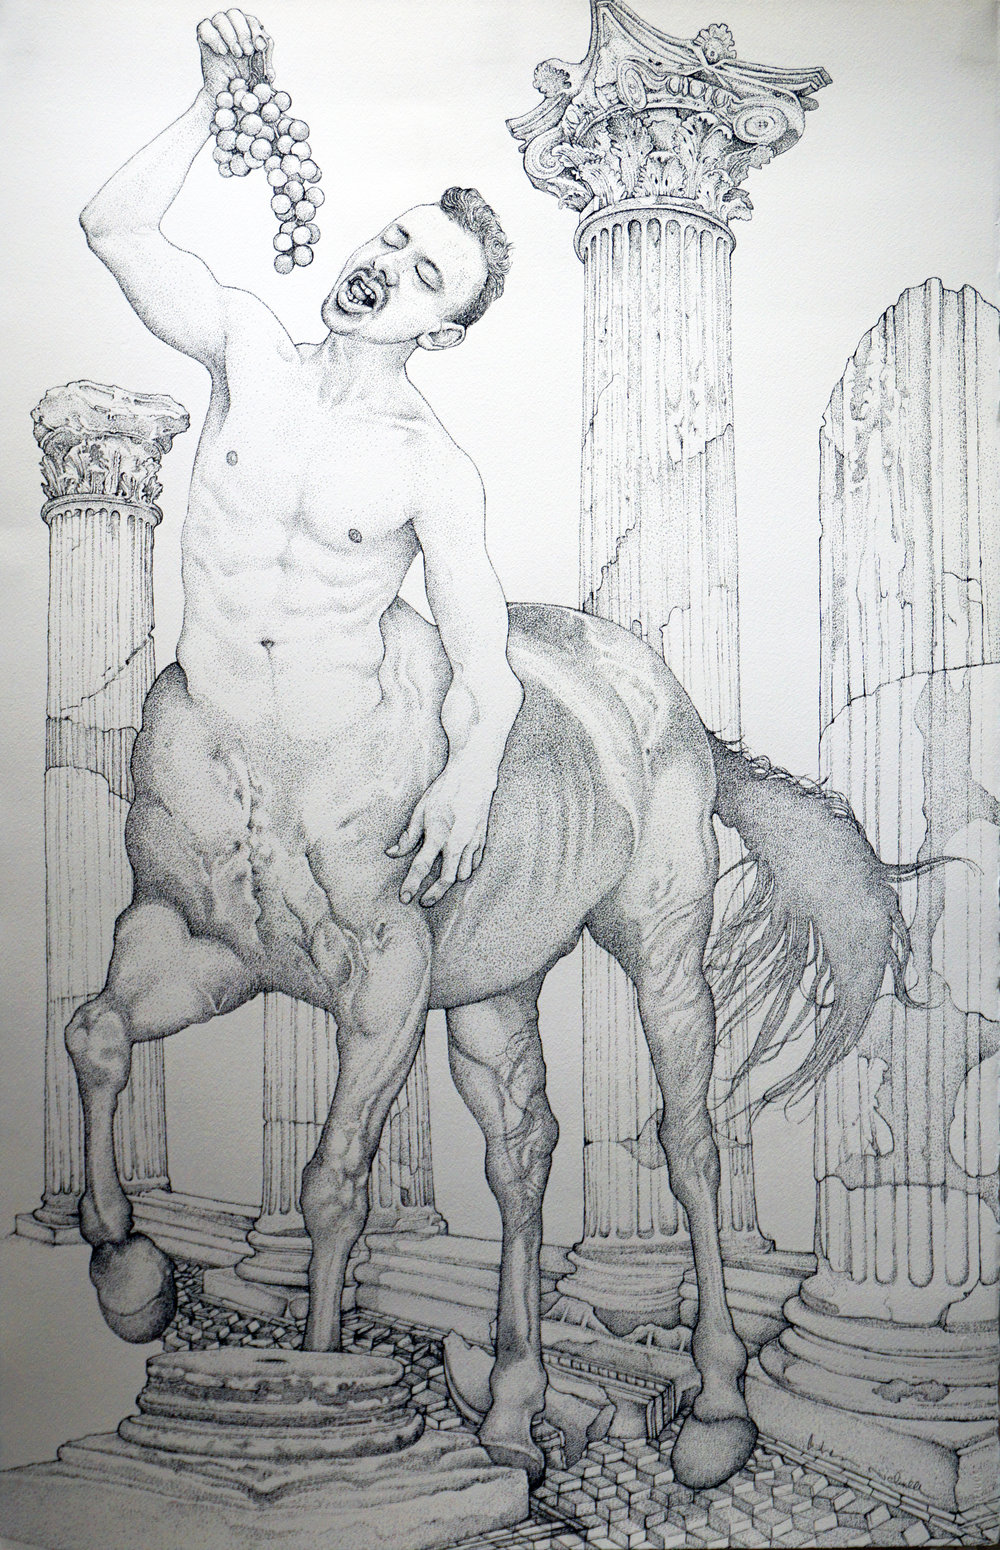 2. Andrew Nicholls,  Centaur,  2015-17, archival ink pen on watercolour paper, 105 x 67 cm, $2,200